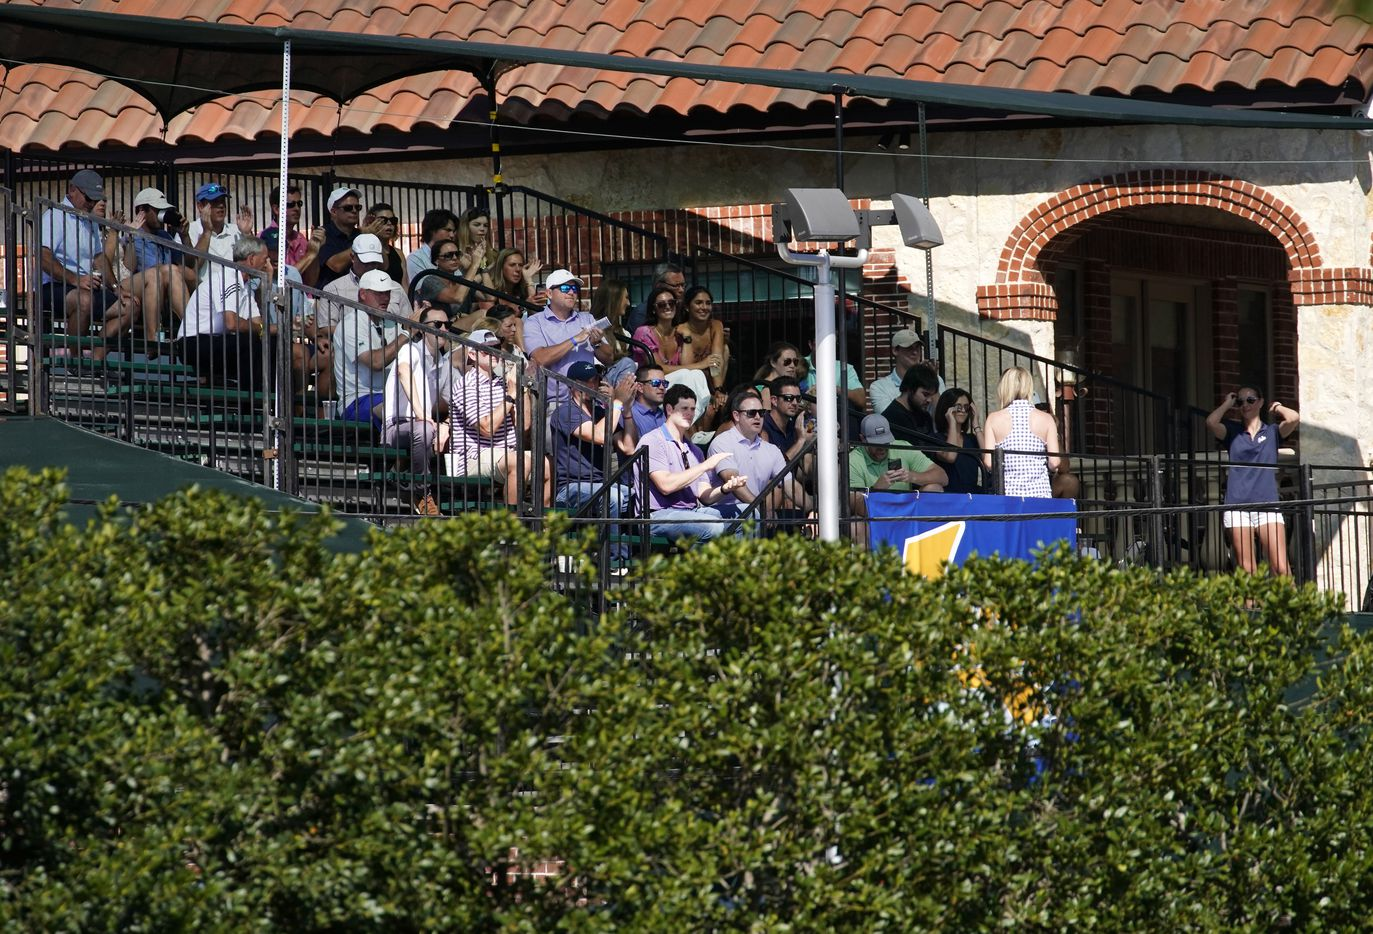 Golf fans fill bleachers built outside the 16th tee box as they applaud PGA Tour golfer Jordan Spieth during the opening round of the Charles Schwab Challenge at the Colonial Country Club in Fort Worth, Thursday, June 11, 2020.  Fans were not allowed to attend The Challenge, the first tour event since the COVID-19 pandemic began. (Tom Fox/The Dallas Morning News)